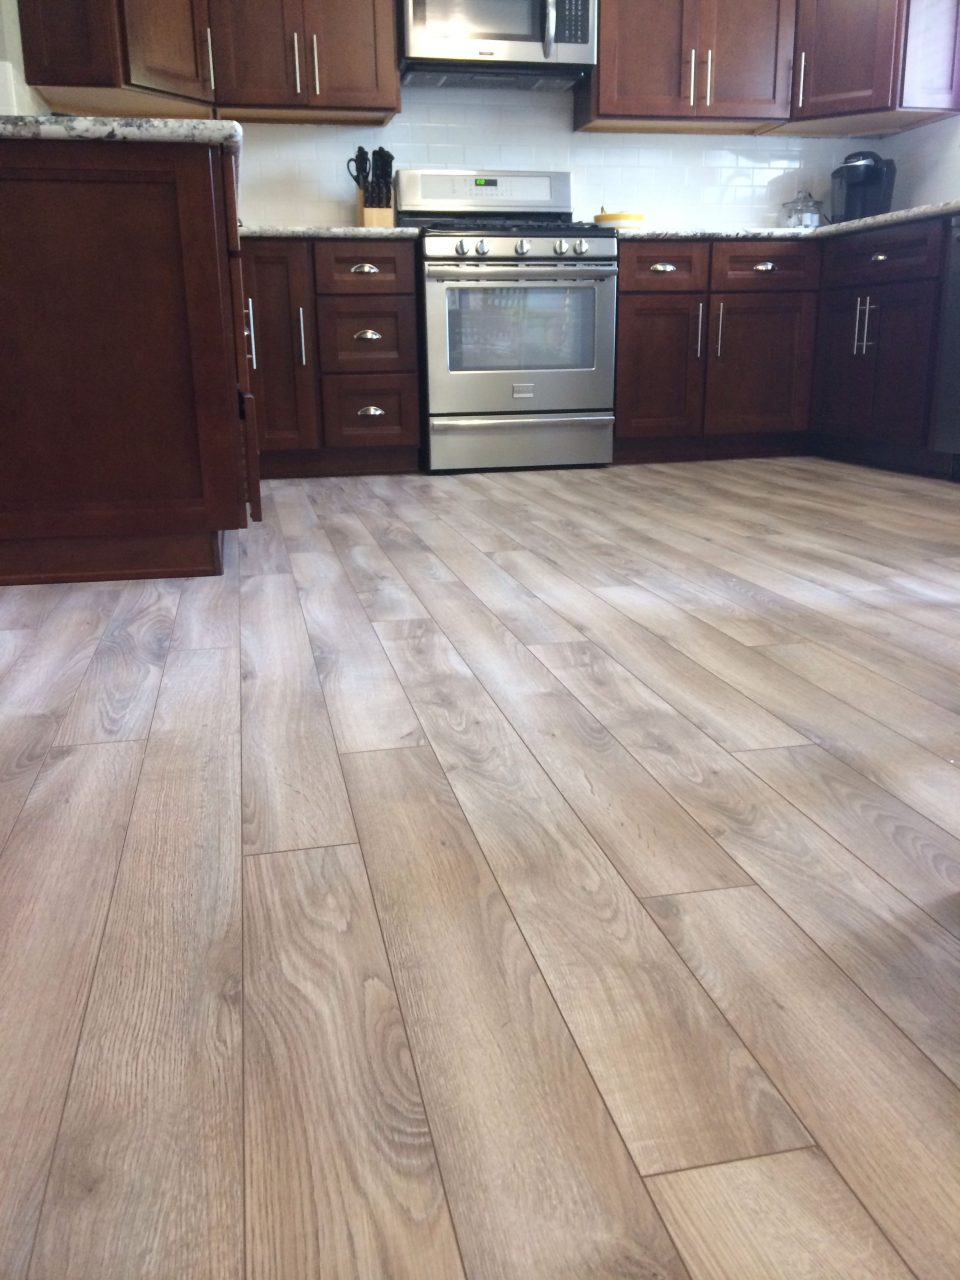 Small Kitchen Design With Cherry Wood Cabinets Get Floored